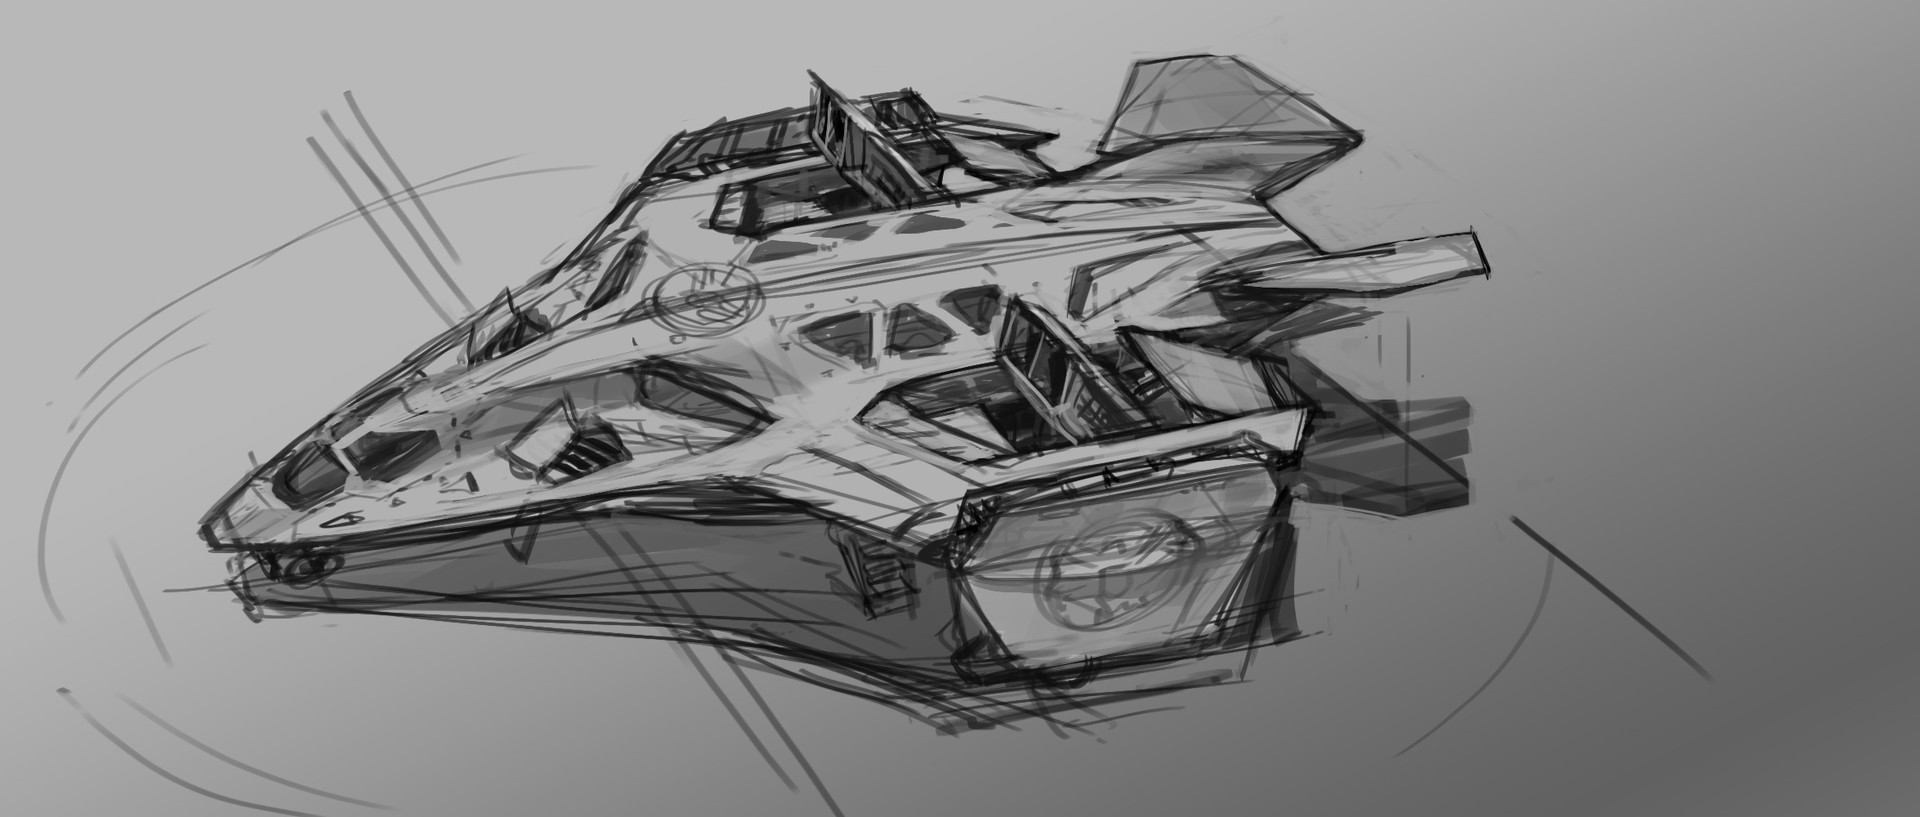 Phil saunders dropshipsketch2